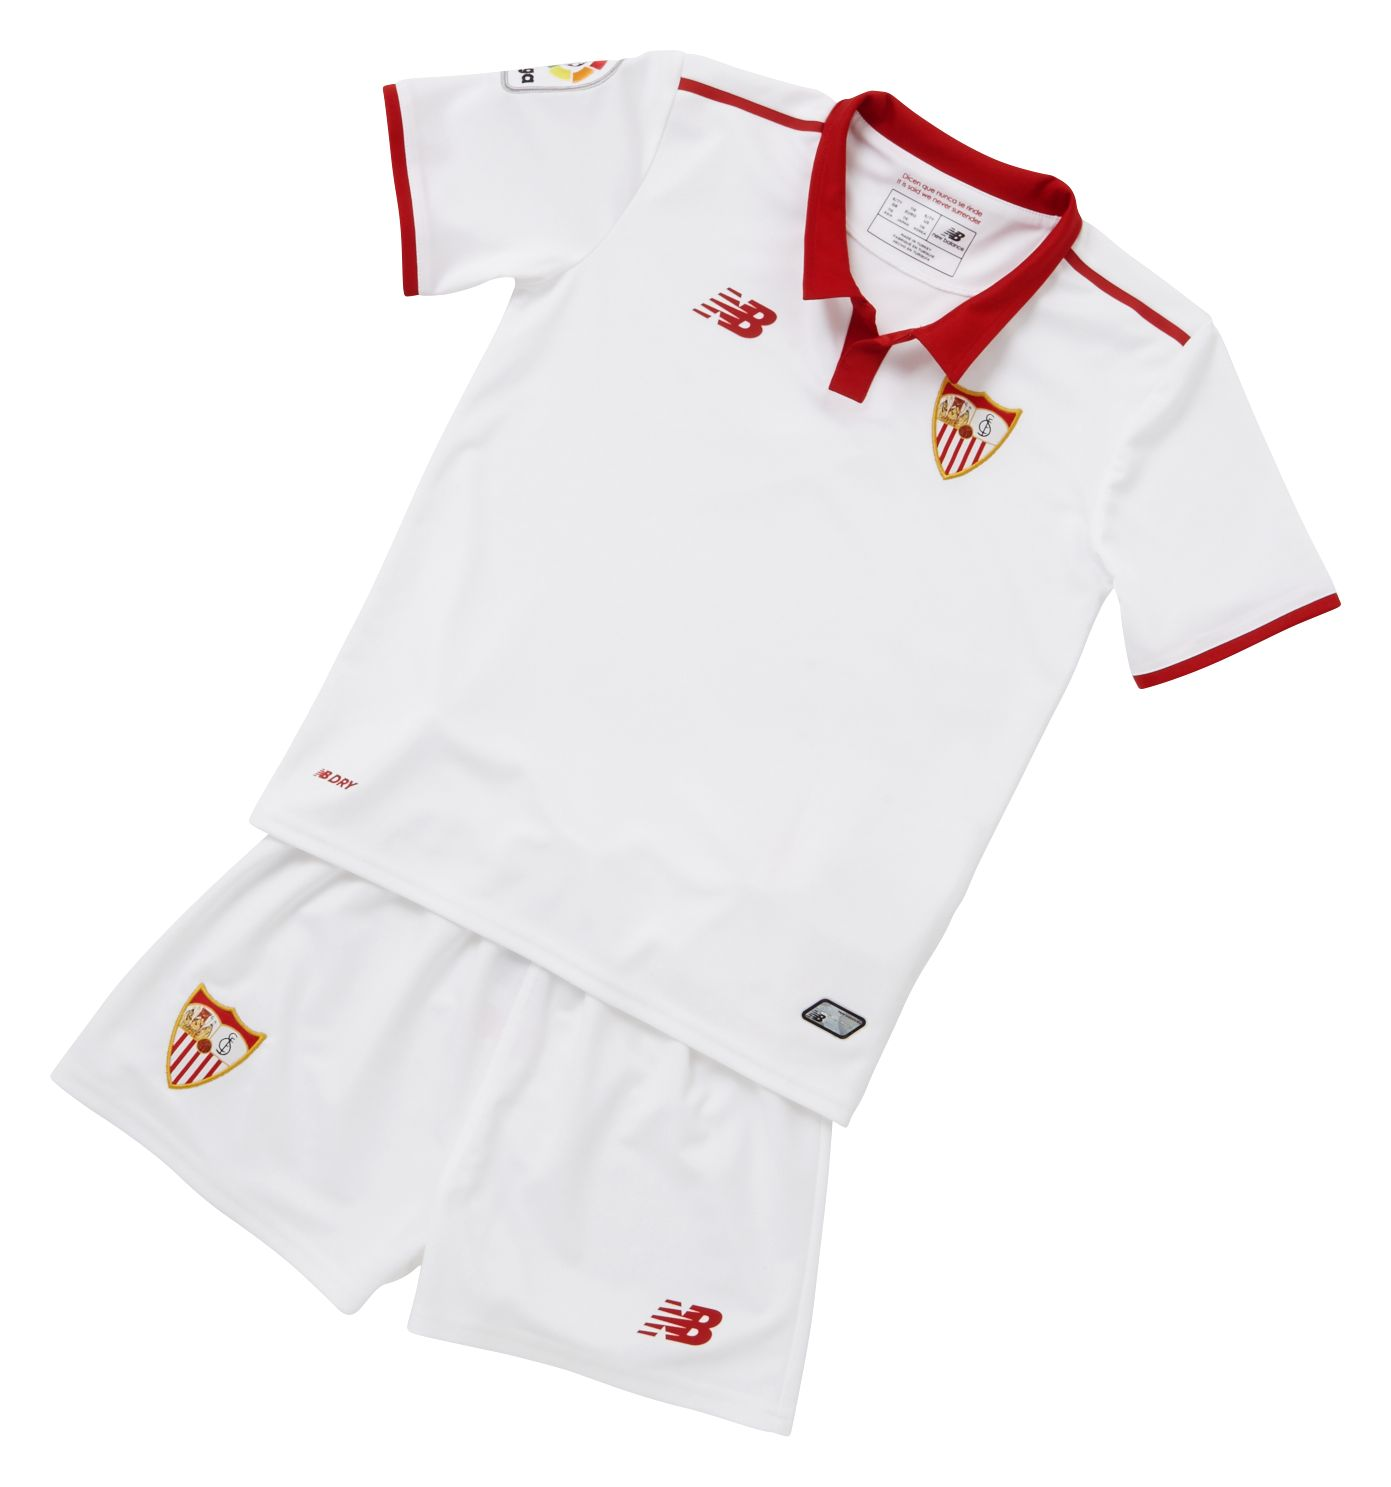 New Balance : SFC Home Infant Kit : Unisex Home Kit : IY630009WT